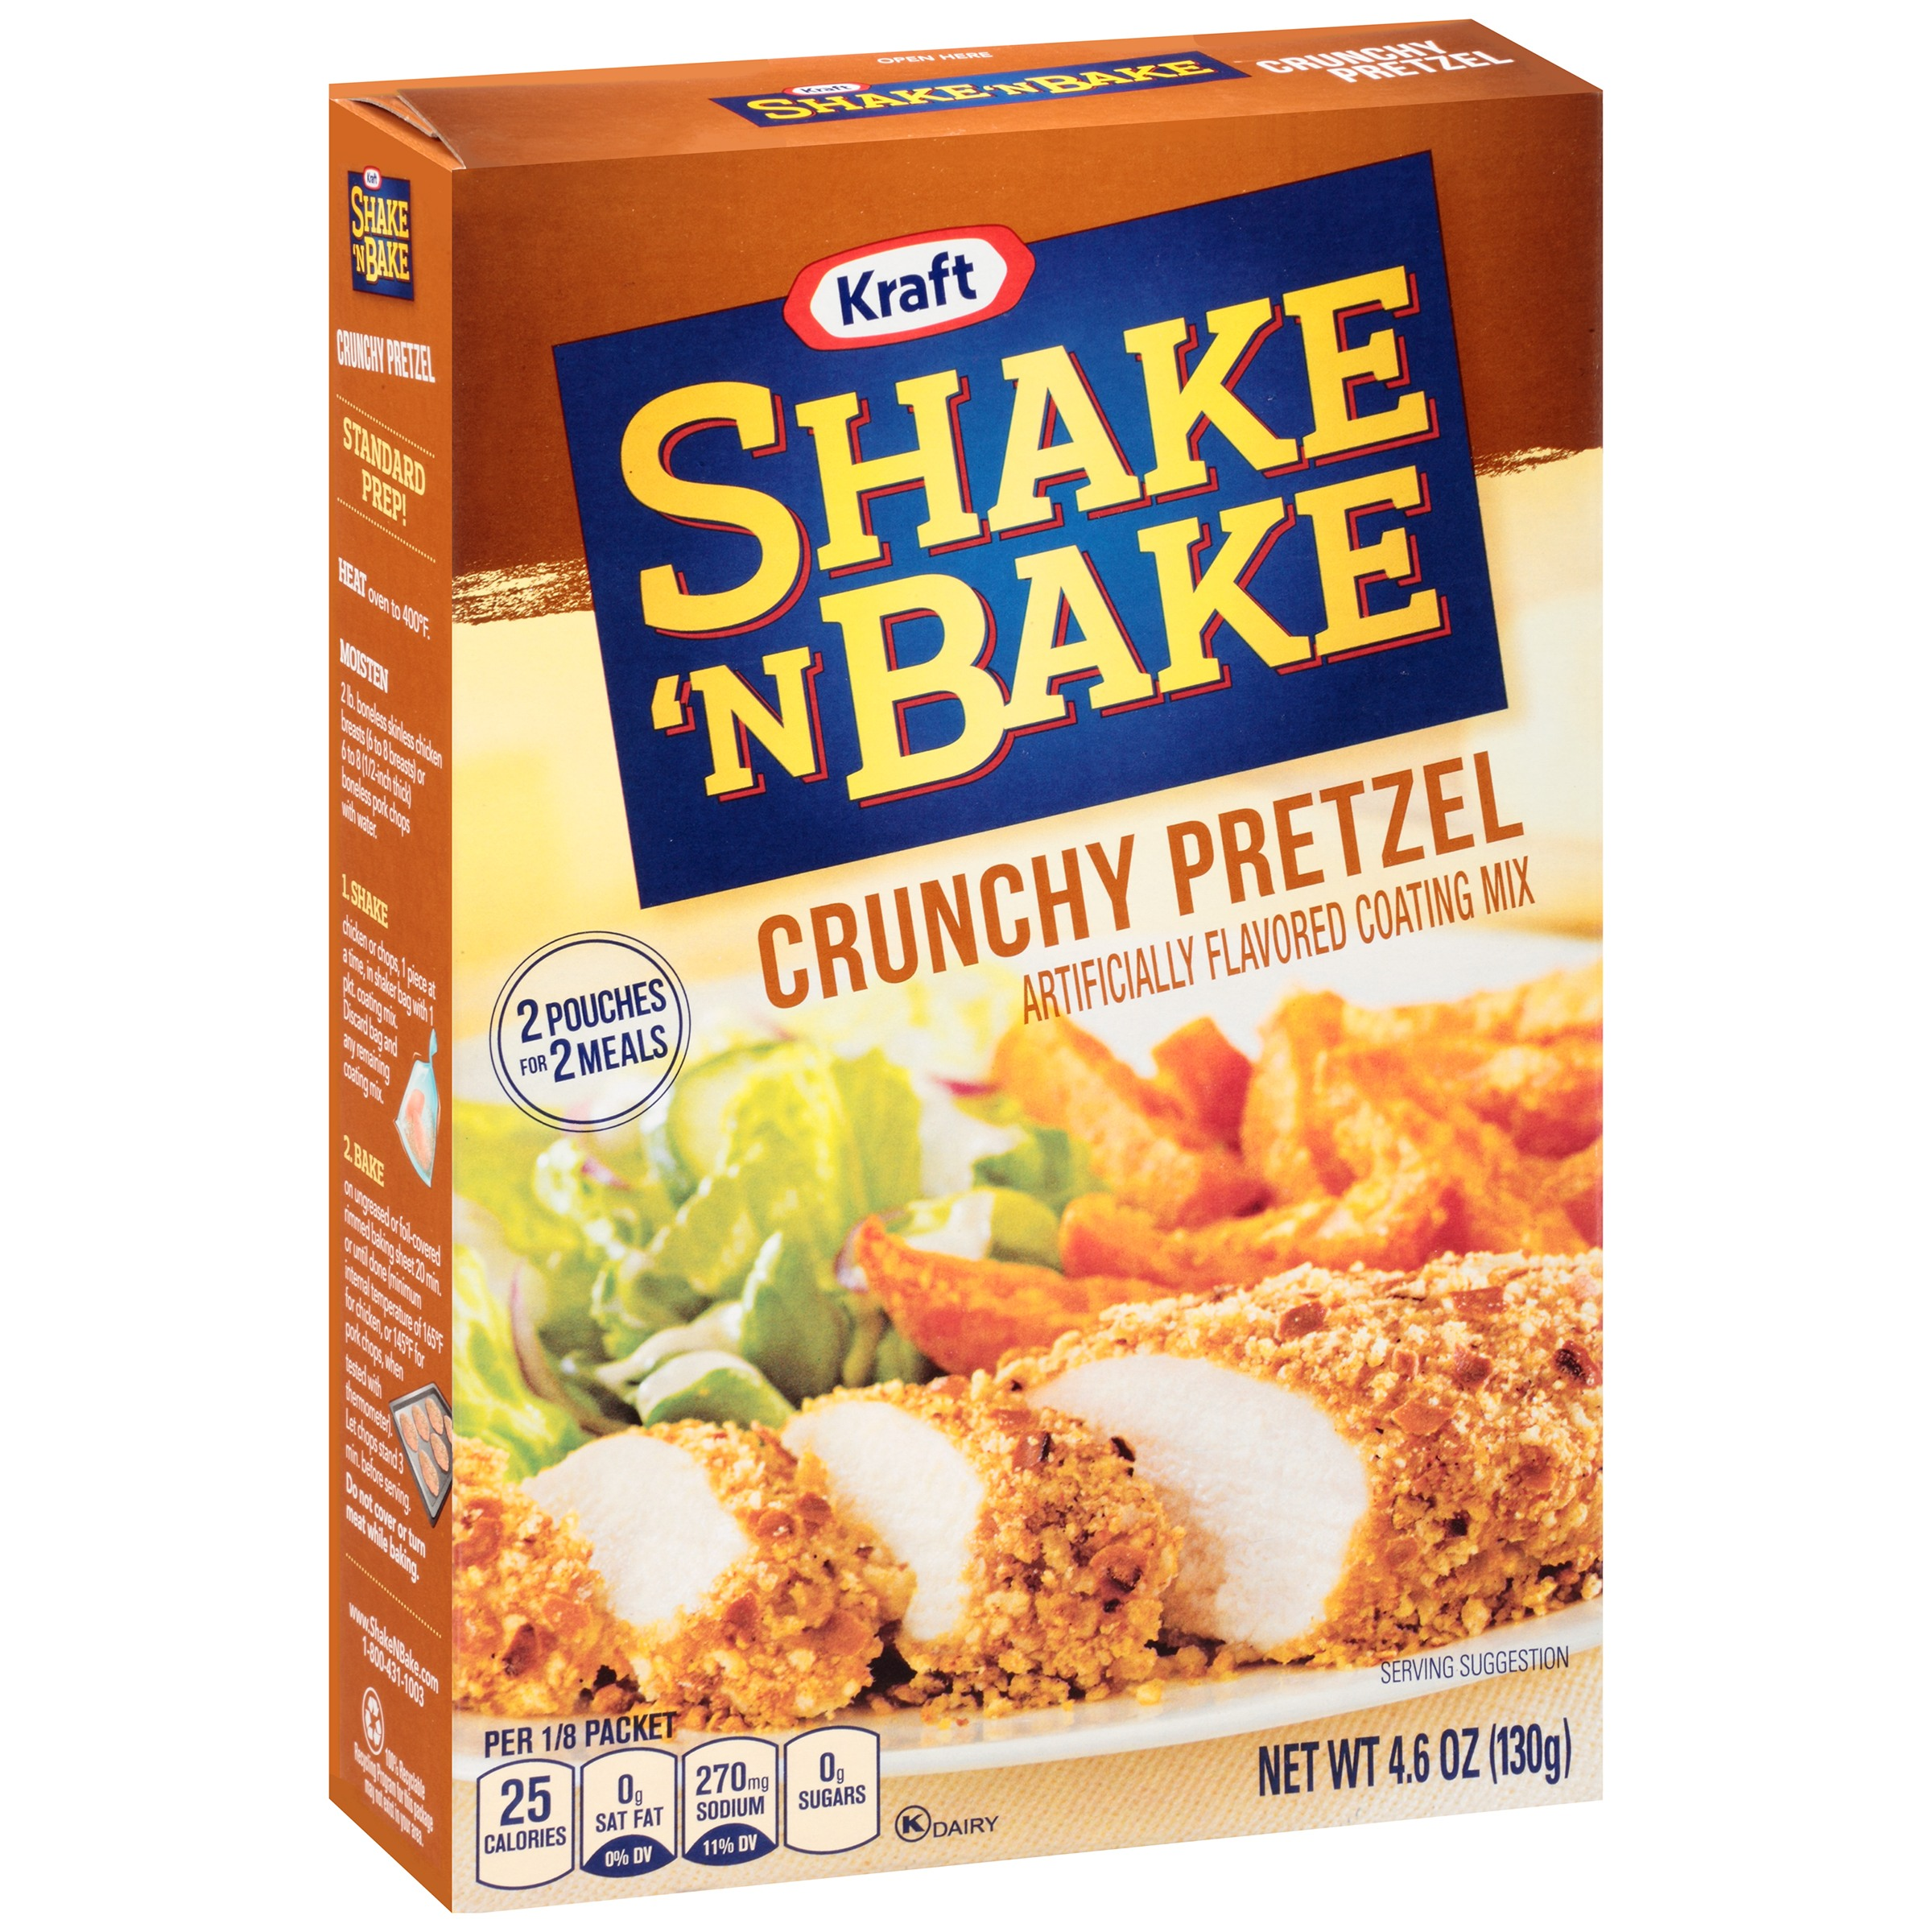 Kraft Shake 'n Bake Crunchy Pretzel Coating Mix, 4.6 oz